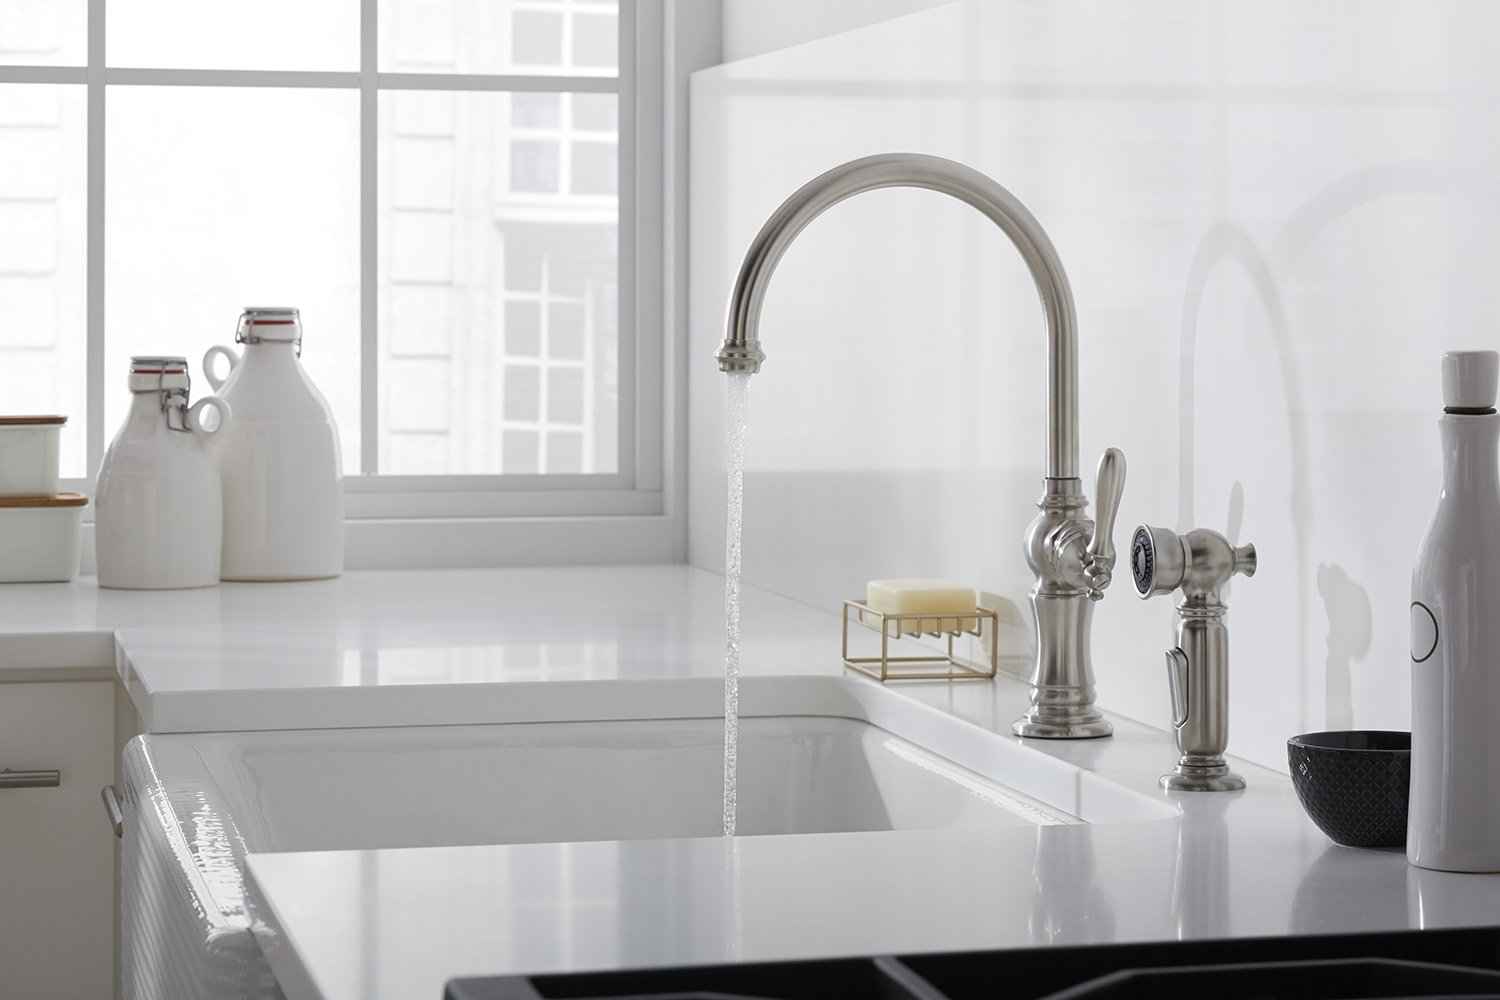 Beautiful KOHLER K 99272 CP Artifacts 3 Hole Kitchen Faucet Escutcheon, Polished  Chrome     Amazon.com